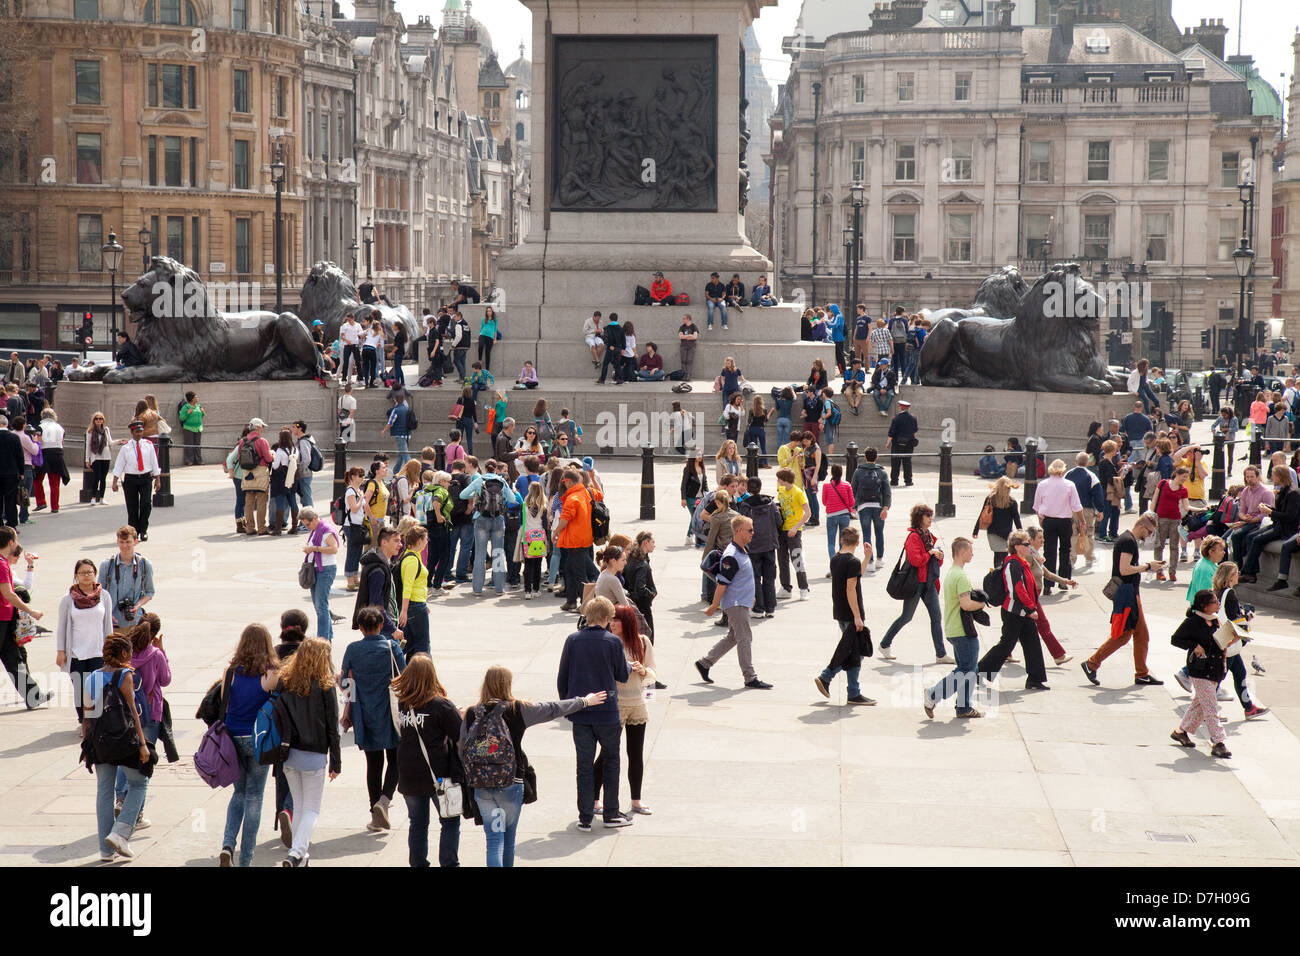 Crowds of people in Trafalgar Square in spring, London WC2, central London, UK - Stock Image